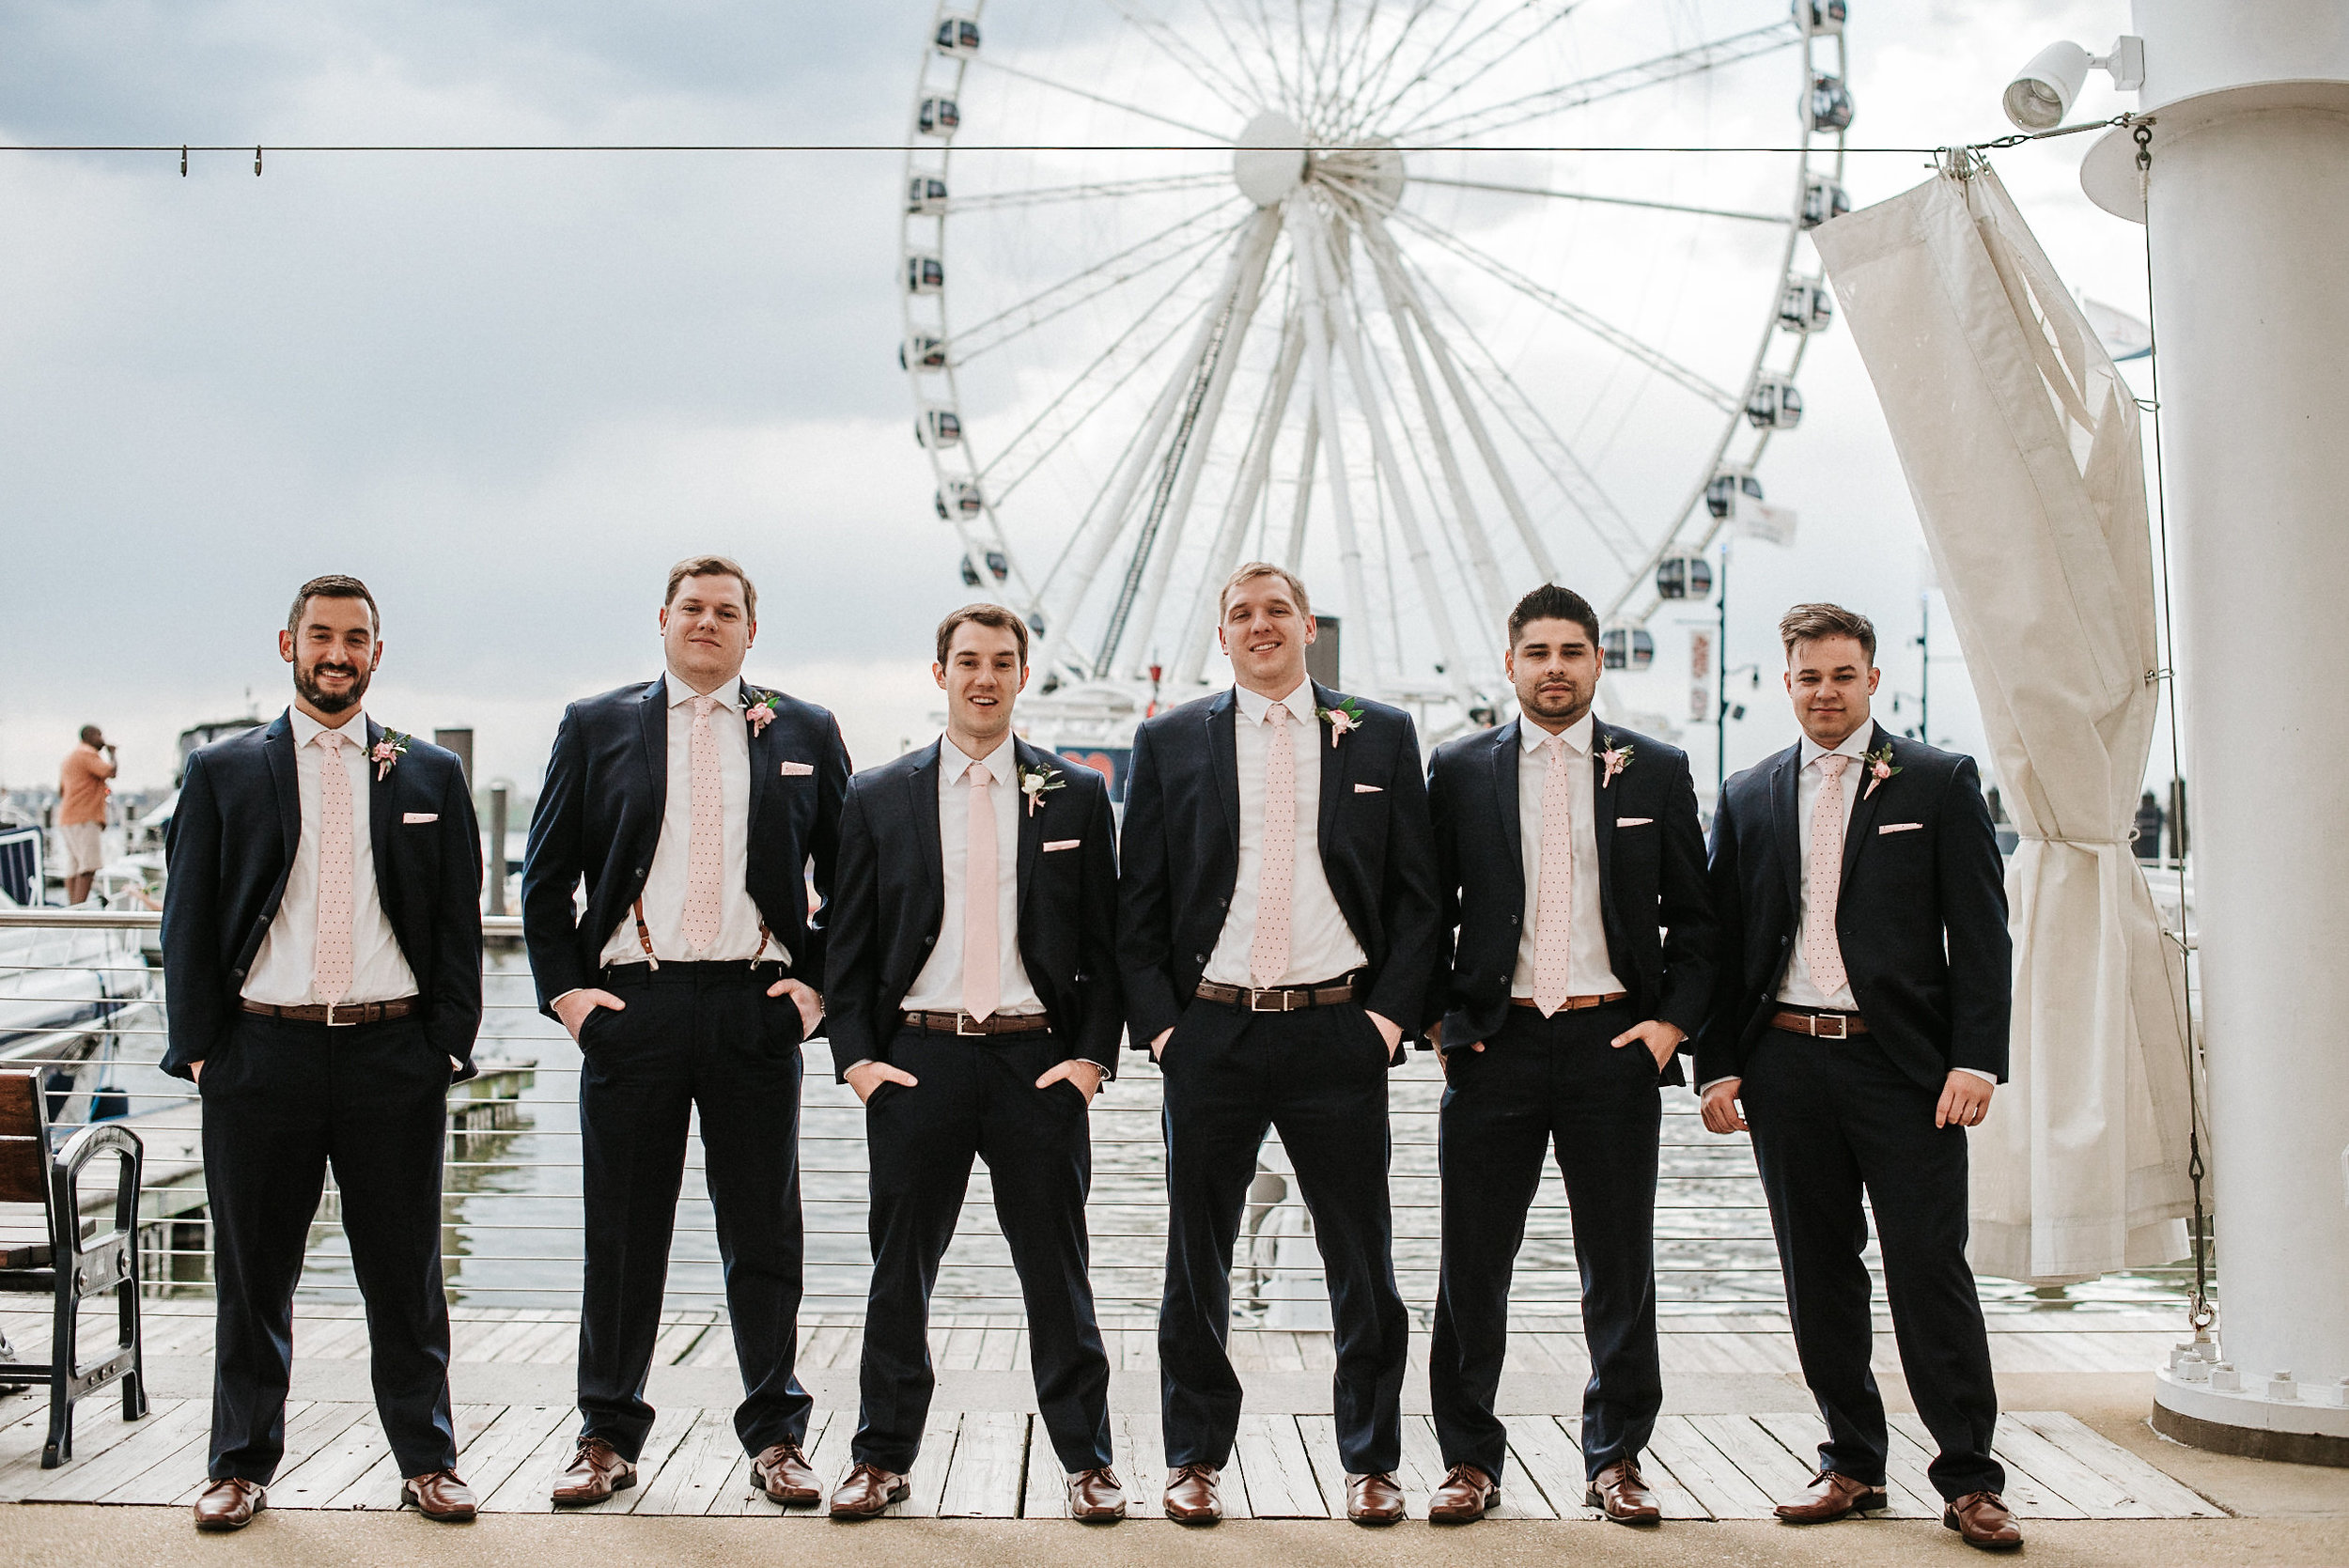 Groom and groomsmen in front of ferris wheel